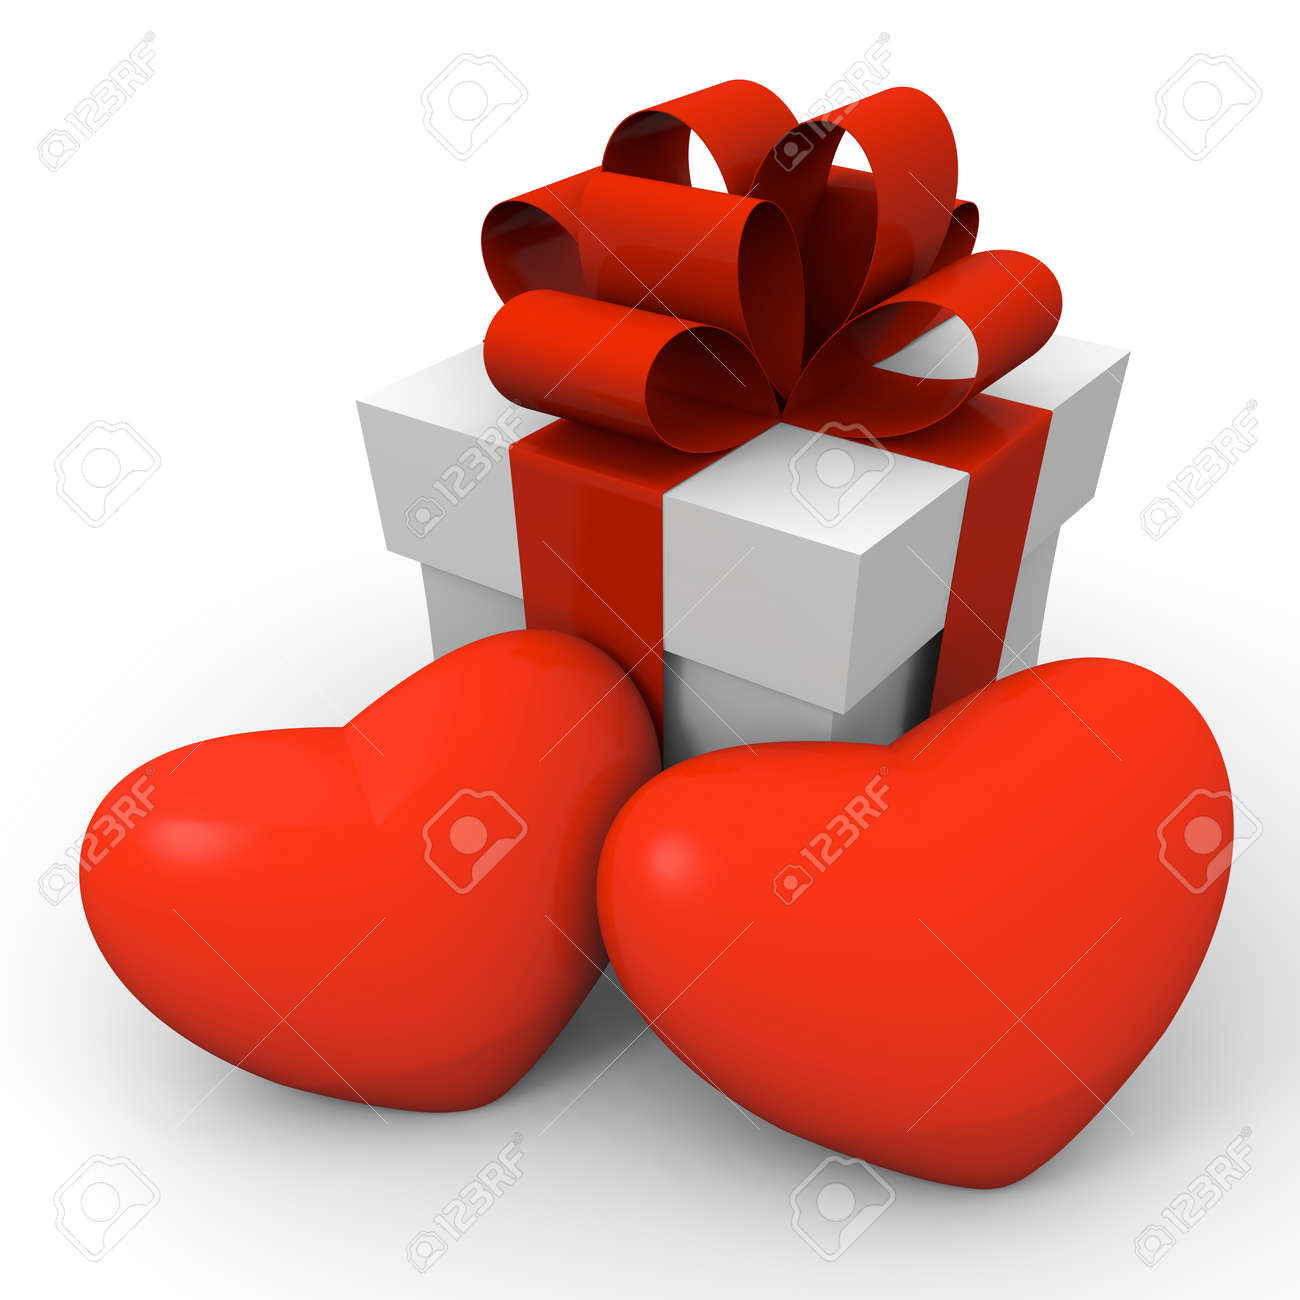 Gift box with two huge hearts Stock Photo - 11789525